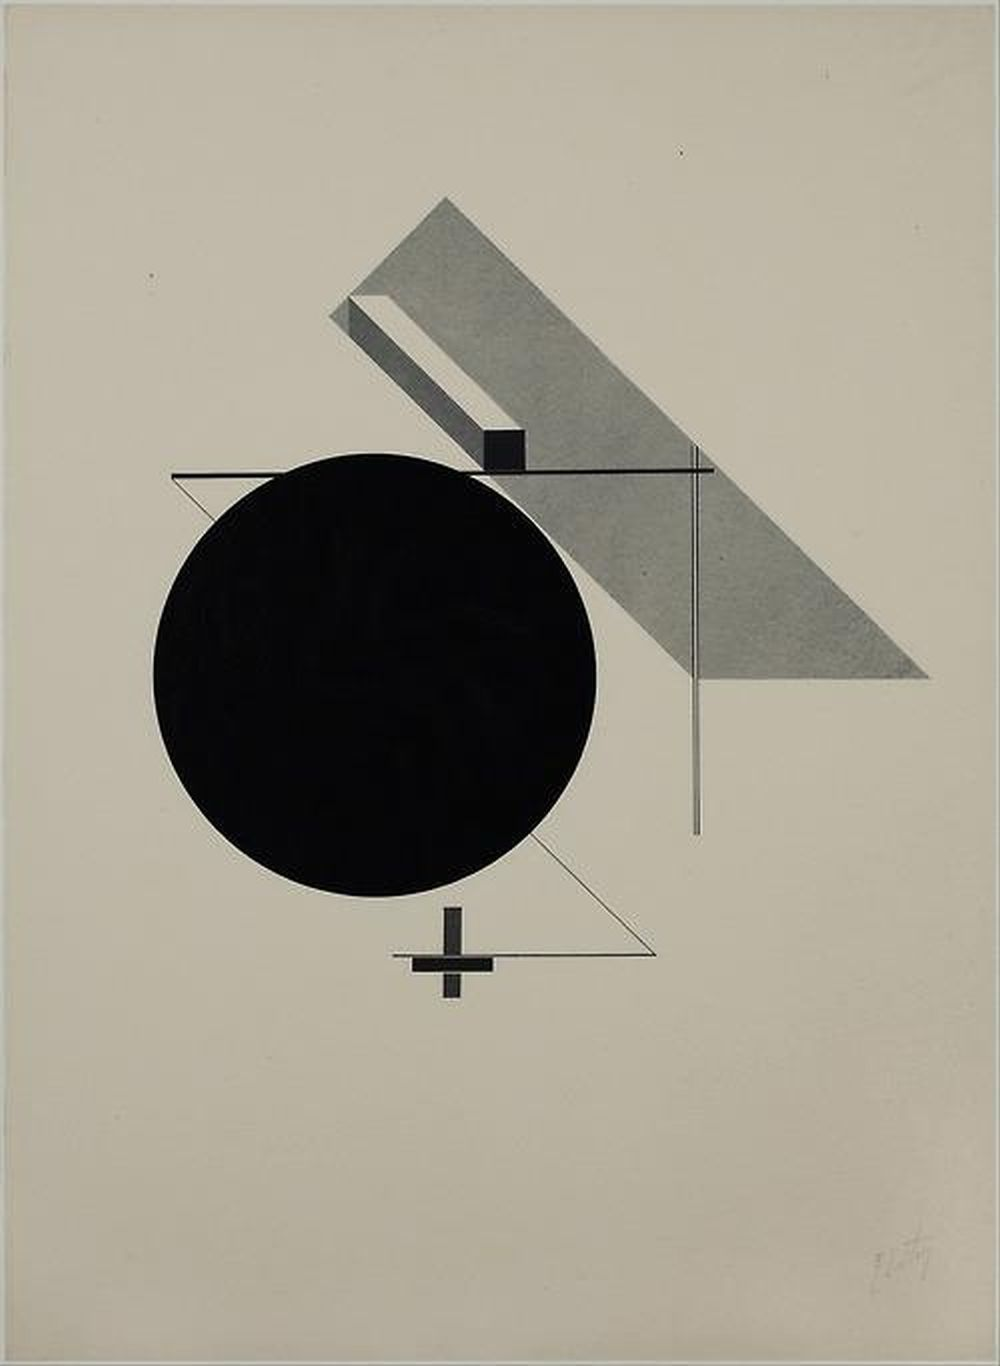 El Lissitzky - Untitled (from 'Proun'), 1919-1923